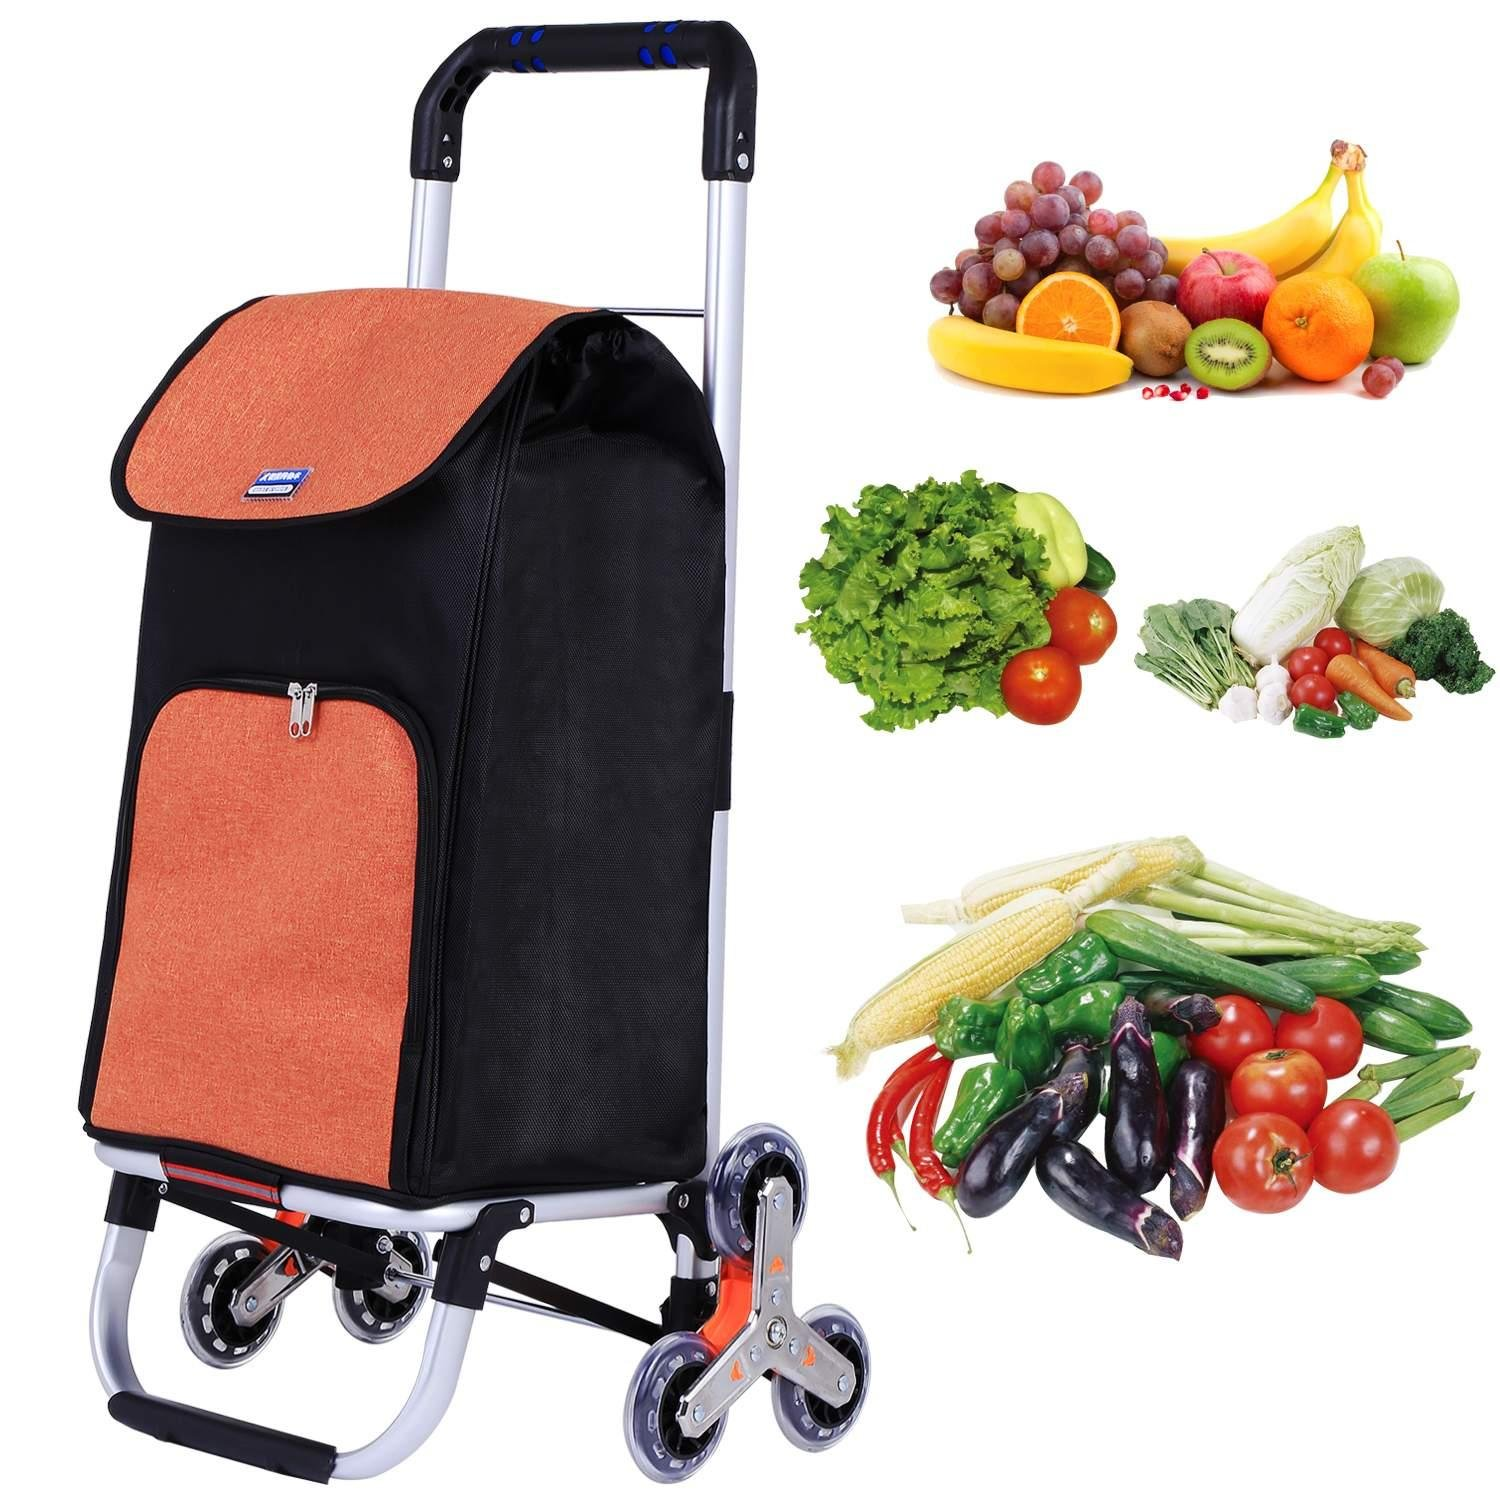 dtemple Foldable Shopping Cart,Stainless Steel Car Body Large Capacity Oxford Cloth Bag Portable Shopping Cart